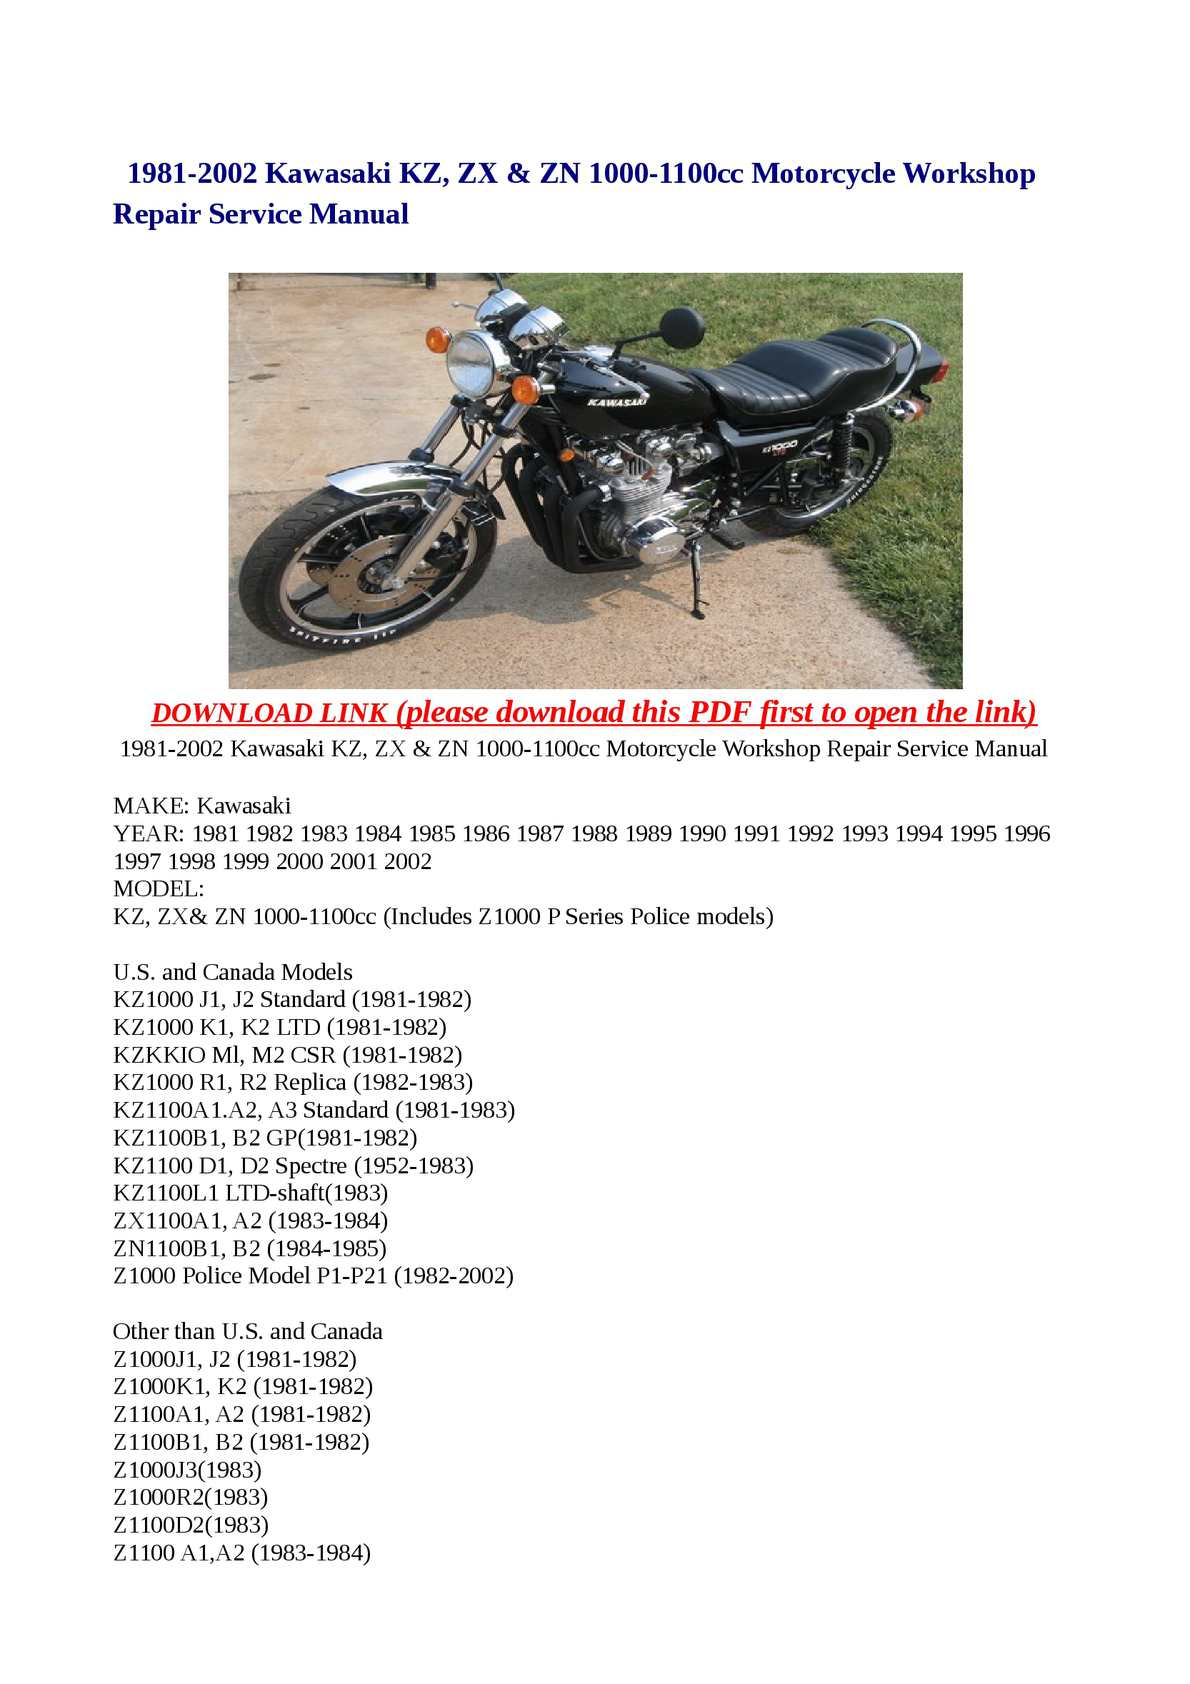 Kz1000 Shaft Wiring Diagram Trusted 1981 Kawasaki Calamo 2002 Kz Zx Zn 1000 1100cc Motorcycle Suzuki